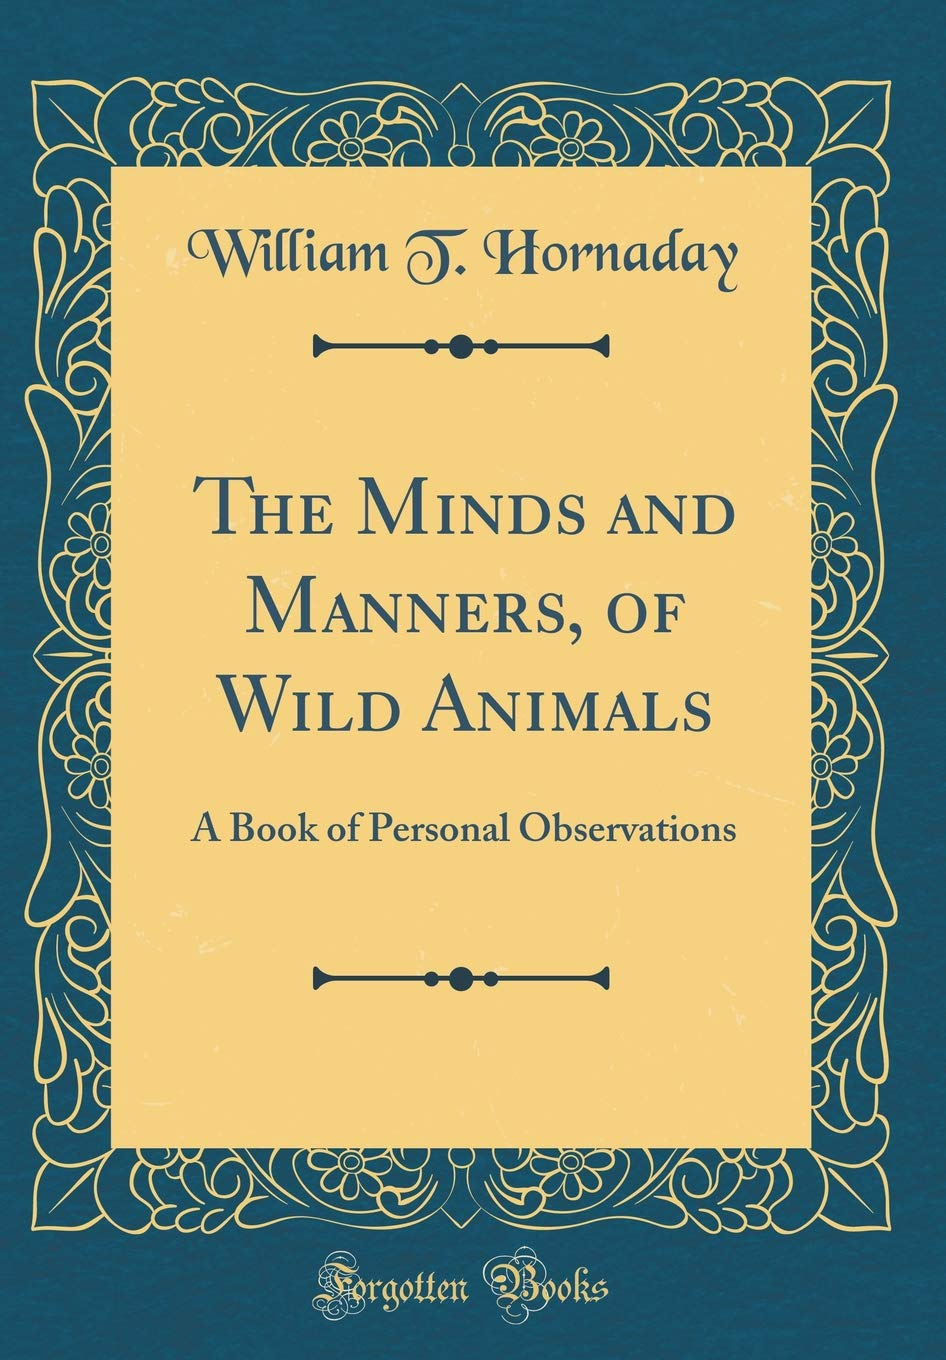 The Minds and Manners, of Wild Animals: A Book of Personal Observations (Classic Reprint) PDF